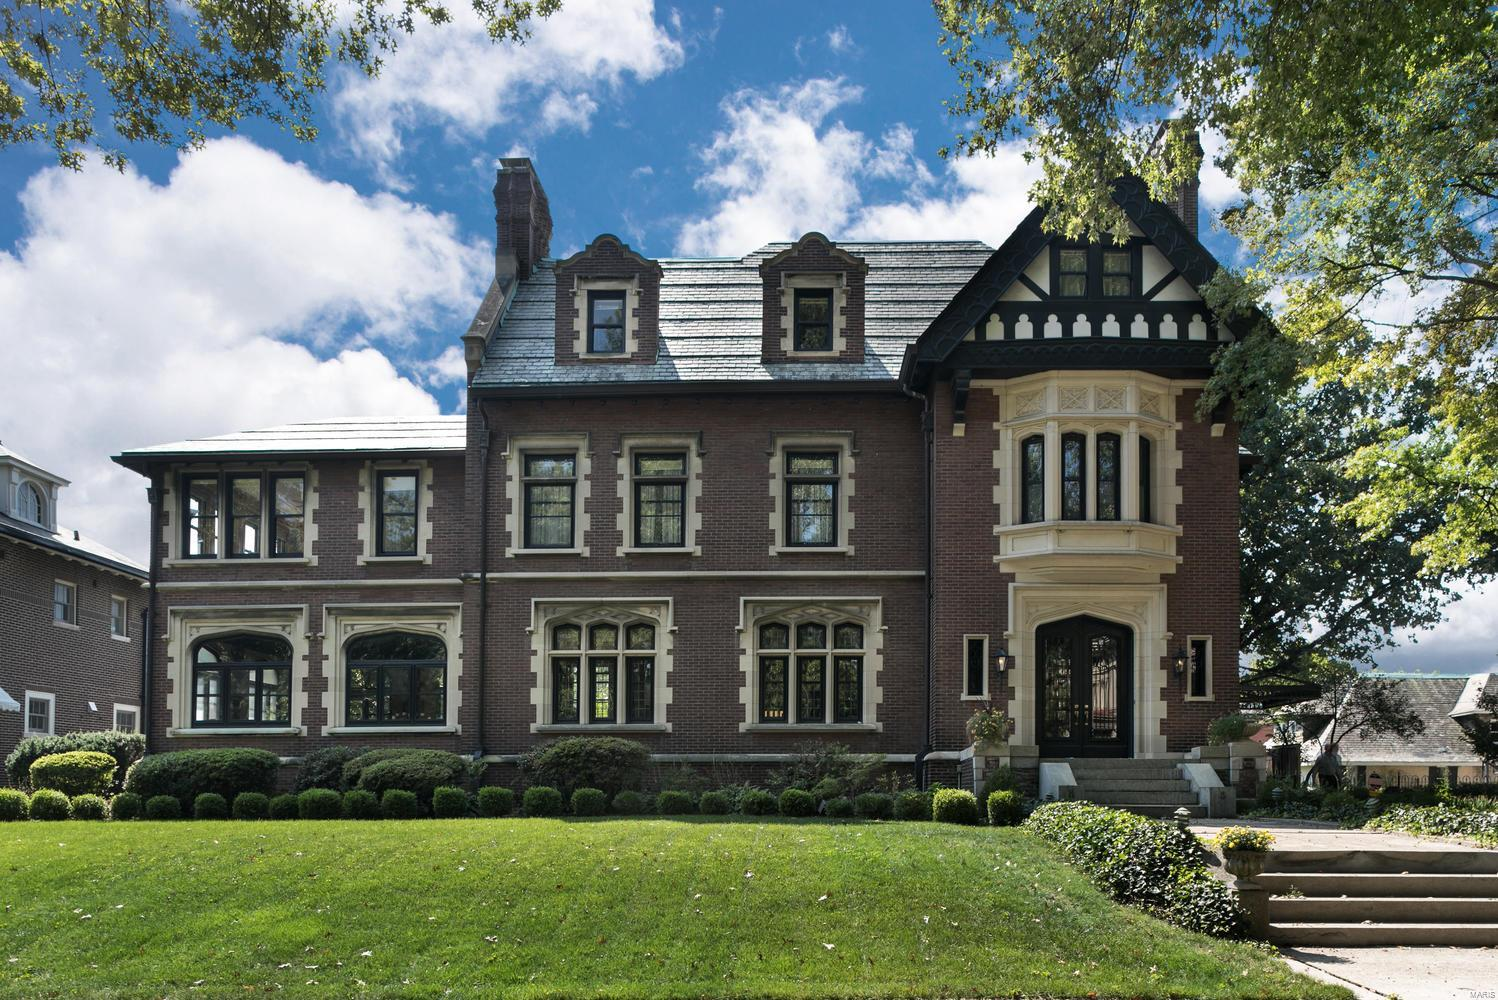 This handsome Tudor revival-style residence has been superbly restored to its original splendor. Outstanding architectural detail includes rare marble floors and walls, herringbone oak flooring, intricate leaded windows, hand-carved paneling and mantels,and breathtaking barrel-vaulted ceiling spanning the entire length of the living room. Updated kitchen,bathrooms,household systems and elevator make for a truly livable home suited for today's lifestyle. Master suite with a spacious bedroom,updated bathroom, dressing room,sitting room,and study. A large terrace, pool, pool house/greenhouse with spa, changing rooms, kitchen, and half bath are perfect for entertaining. A carriage house with guest suite and four garage spaces is located within the professionally landscaped garden which includes a decorative pond, mature trees, azaleas, and perennials. This remarkable home combines the best of Old World elegance with today's desired amenities creating the perfect setting for entertaining.